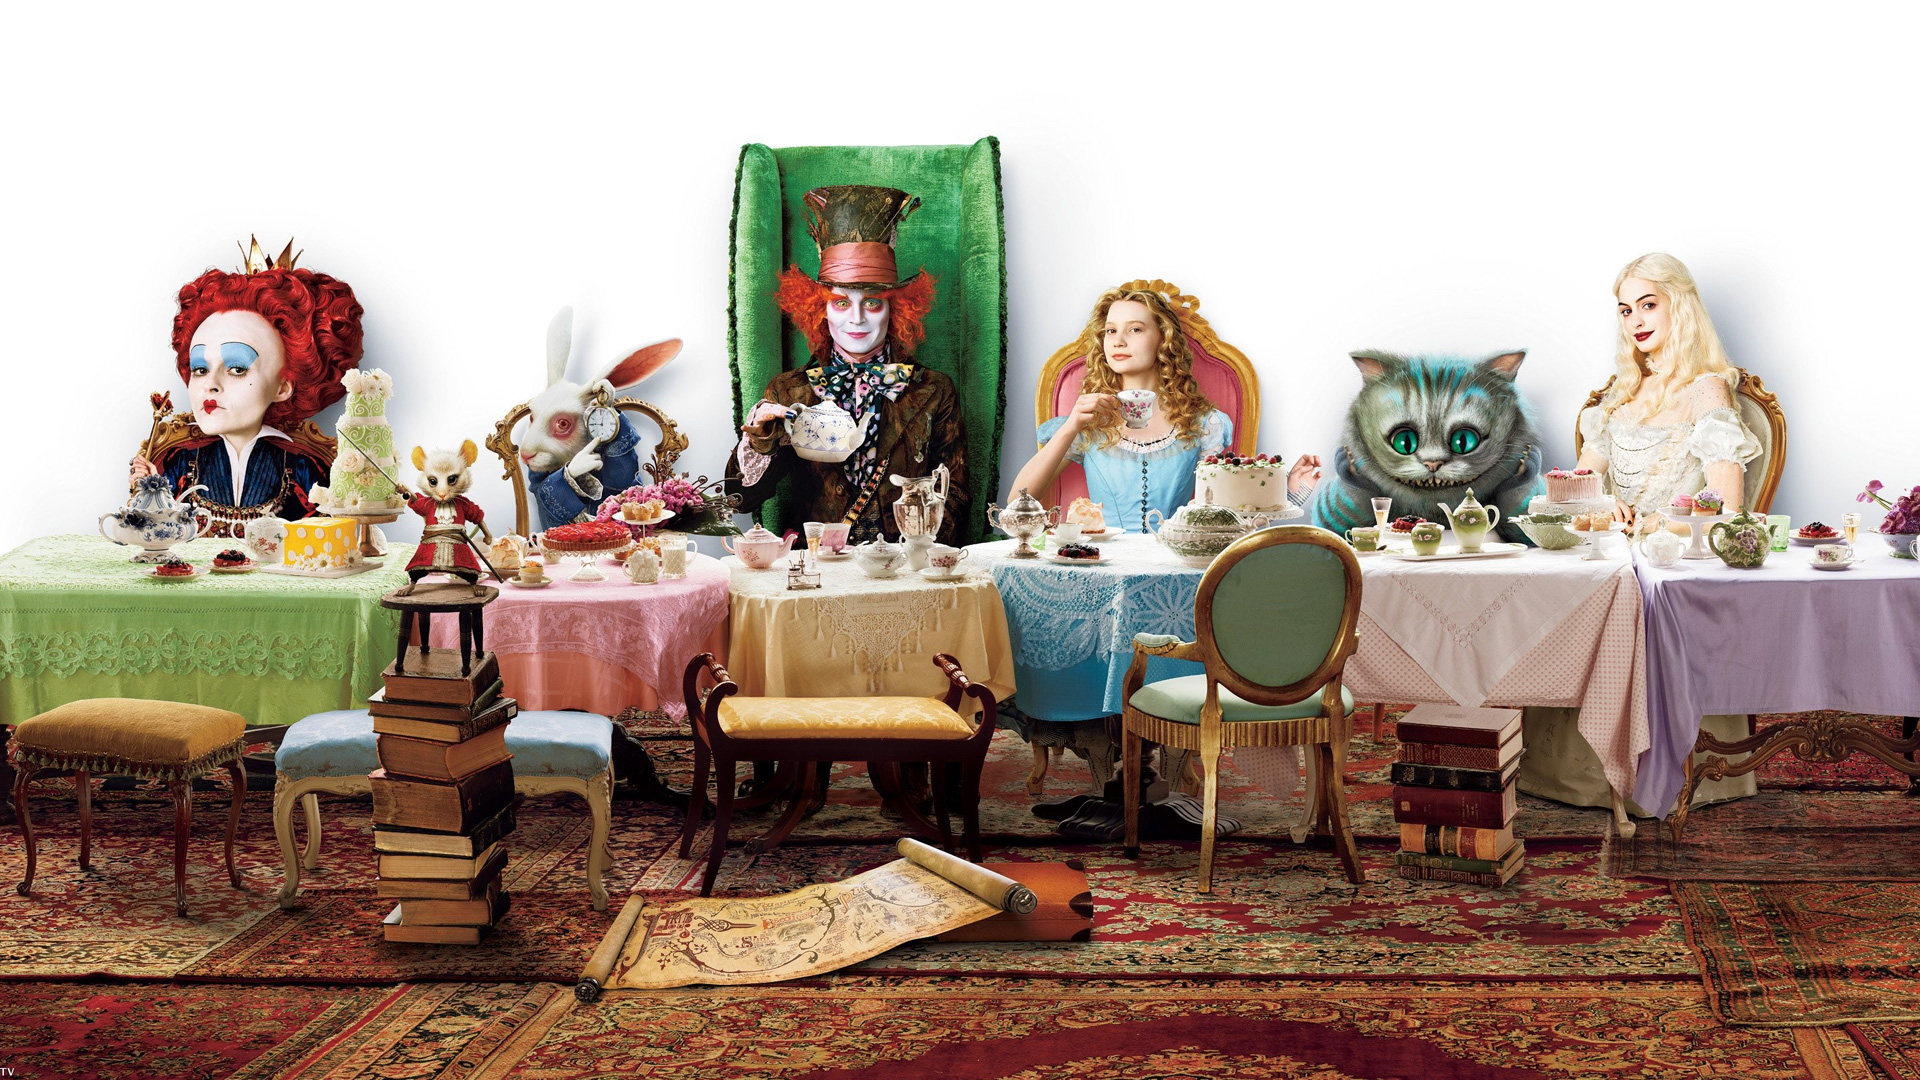 Images of Alice In Wonderland | 1920x1080